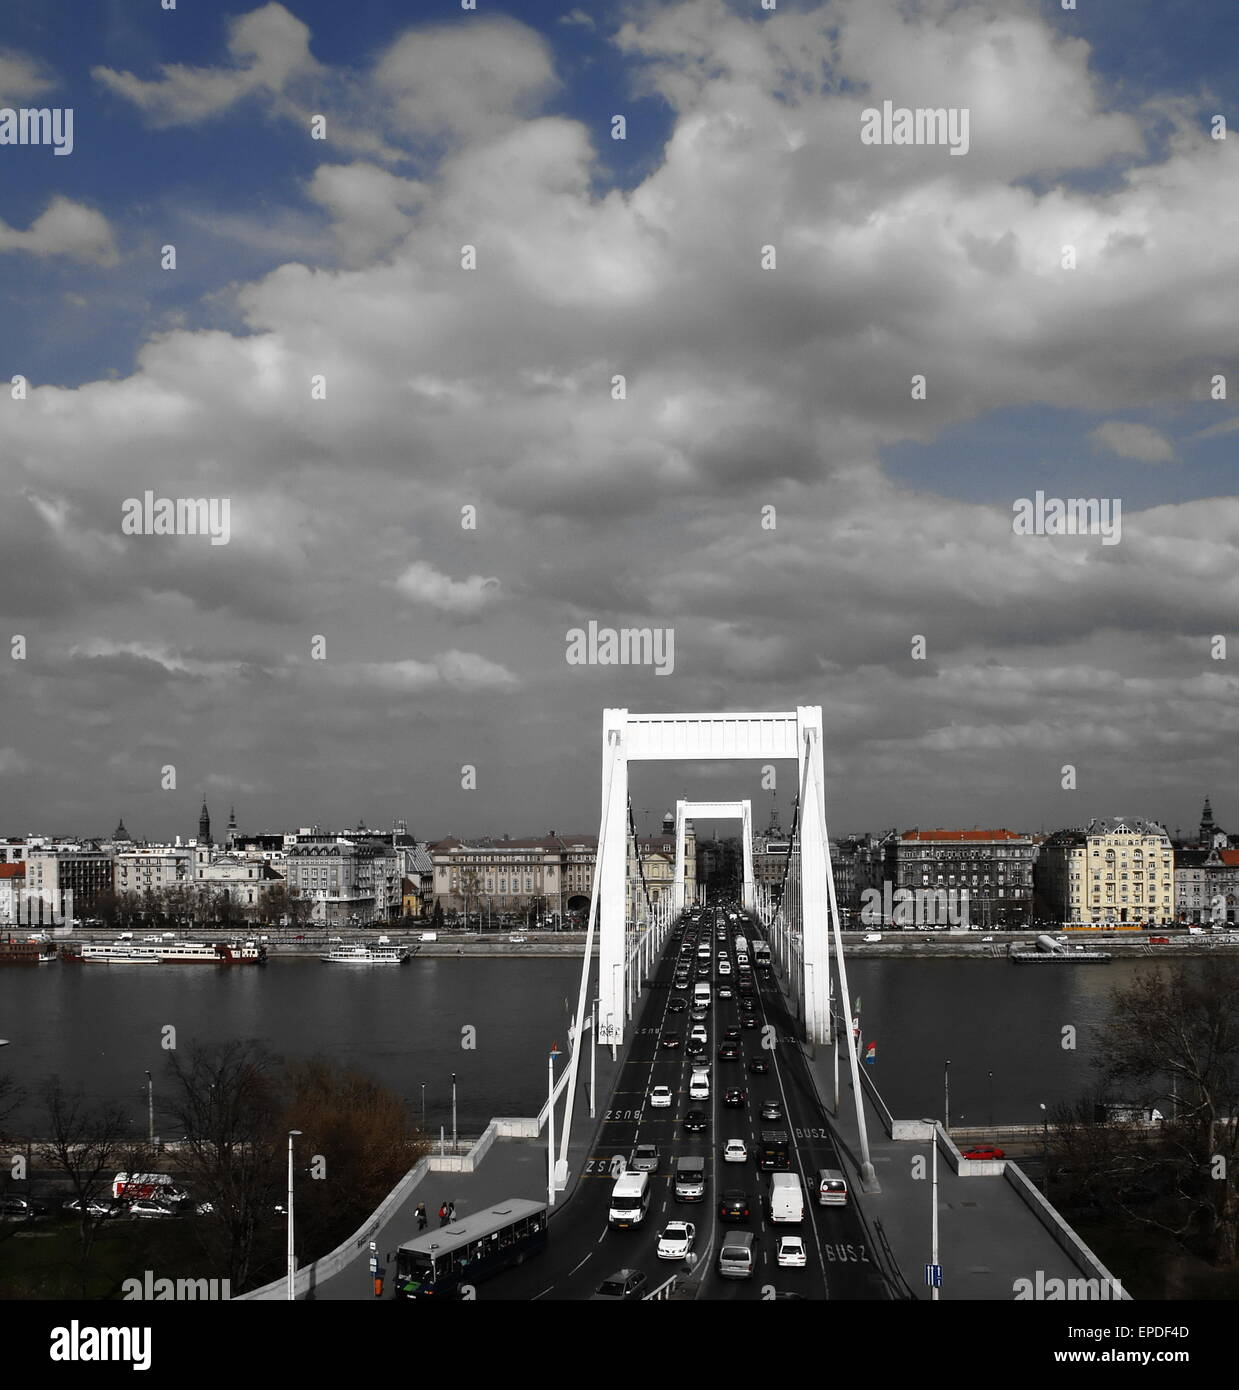 City of Budapest. Bridge over the Danube. Half desaturated. - Stock Image